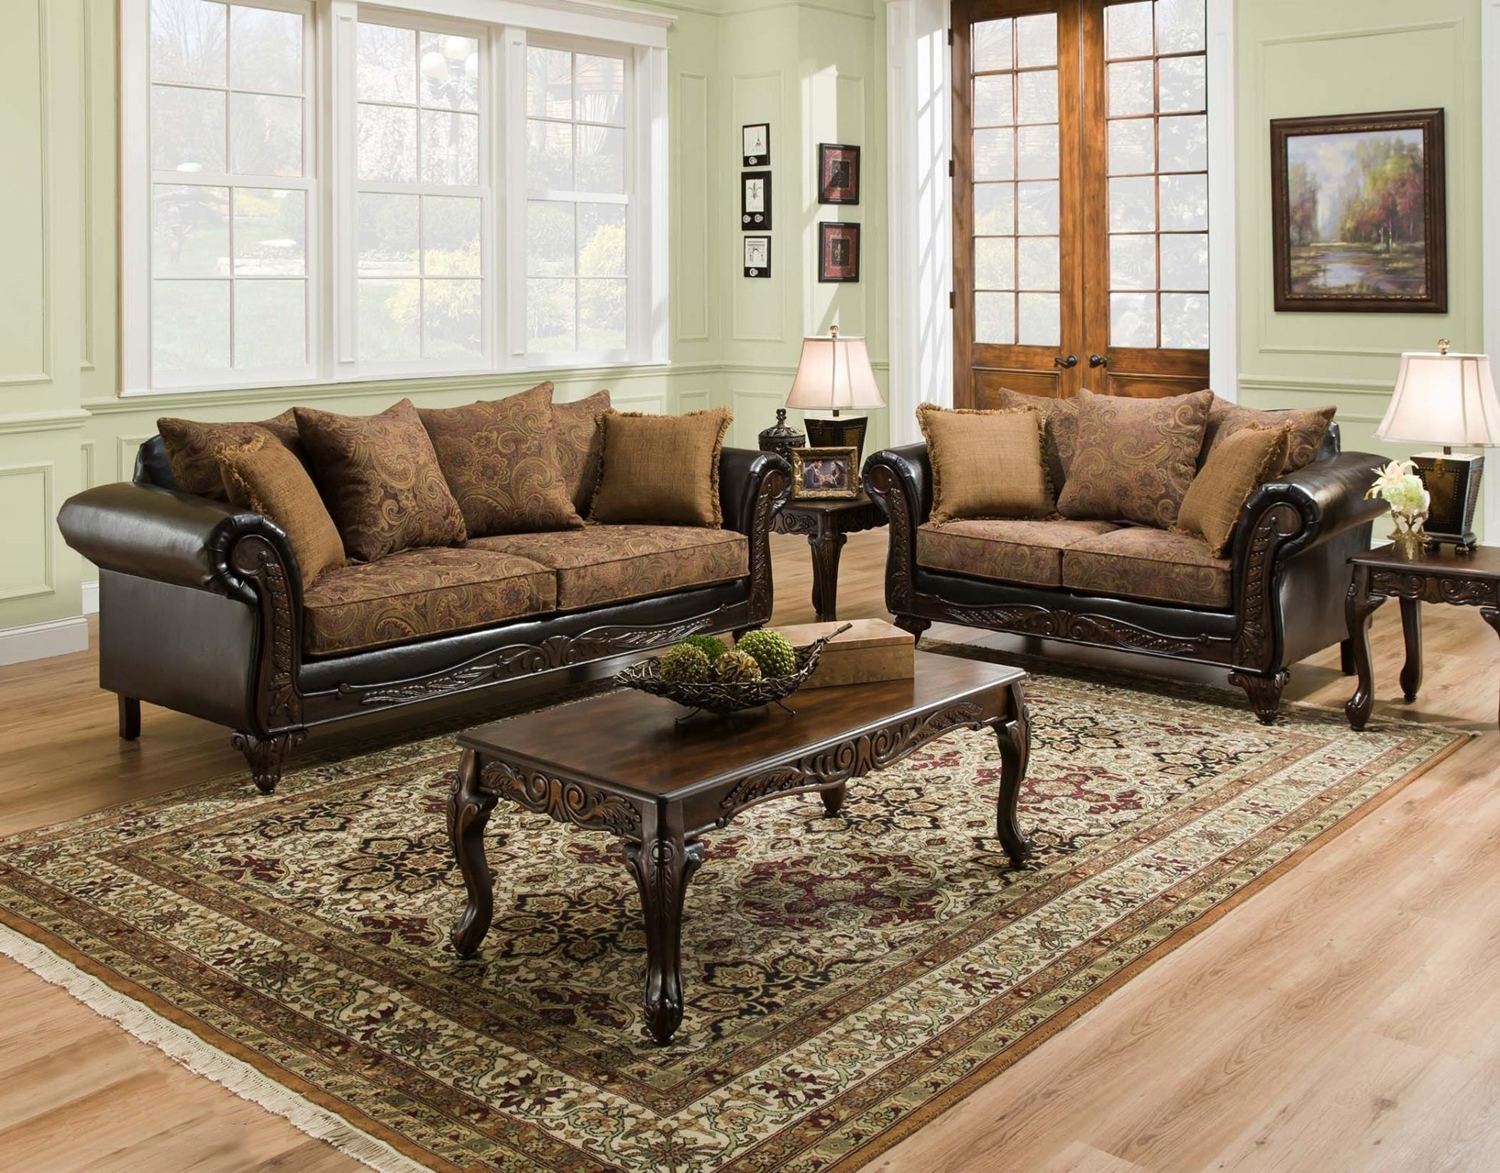 san marino traditional living room furniture set w wood trim accent pillows ebay. Black Bedroom Furniture Sets. Home Design Ideas